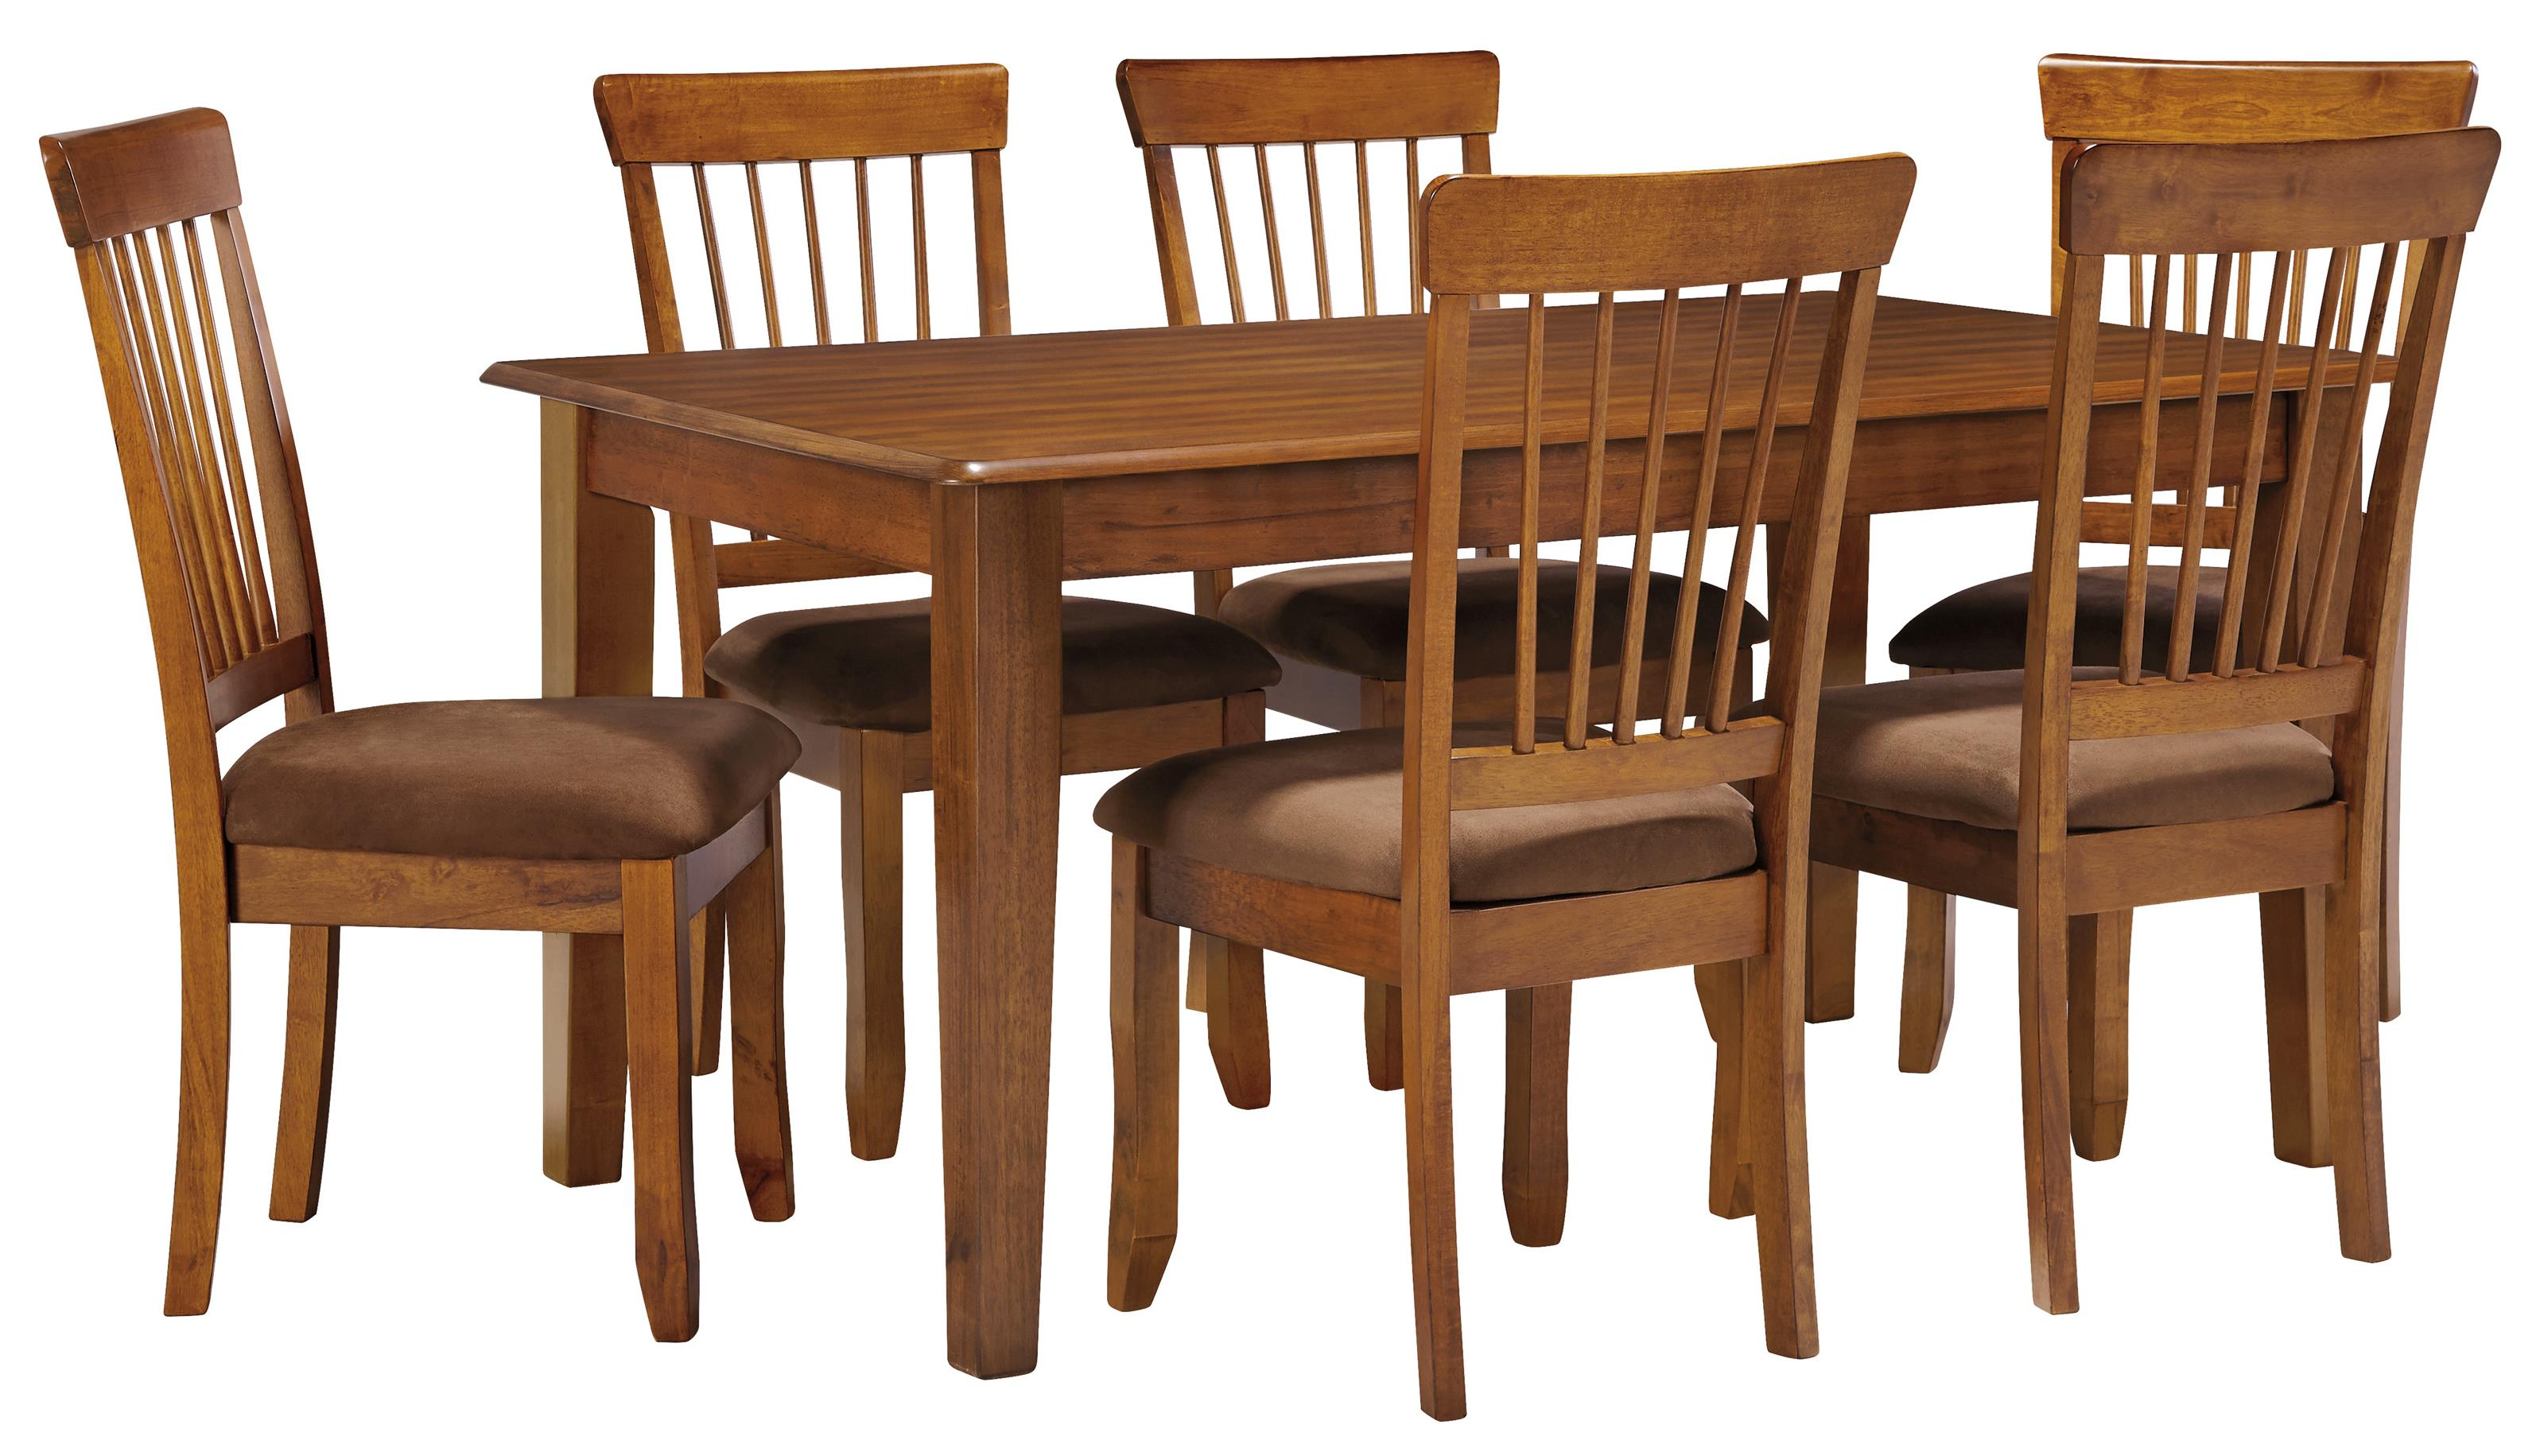 Berringer 7-Piece 36x60 Table & Chair Set by Ashley Furniture at Furniture and ApplianceMart